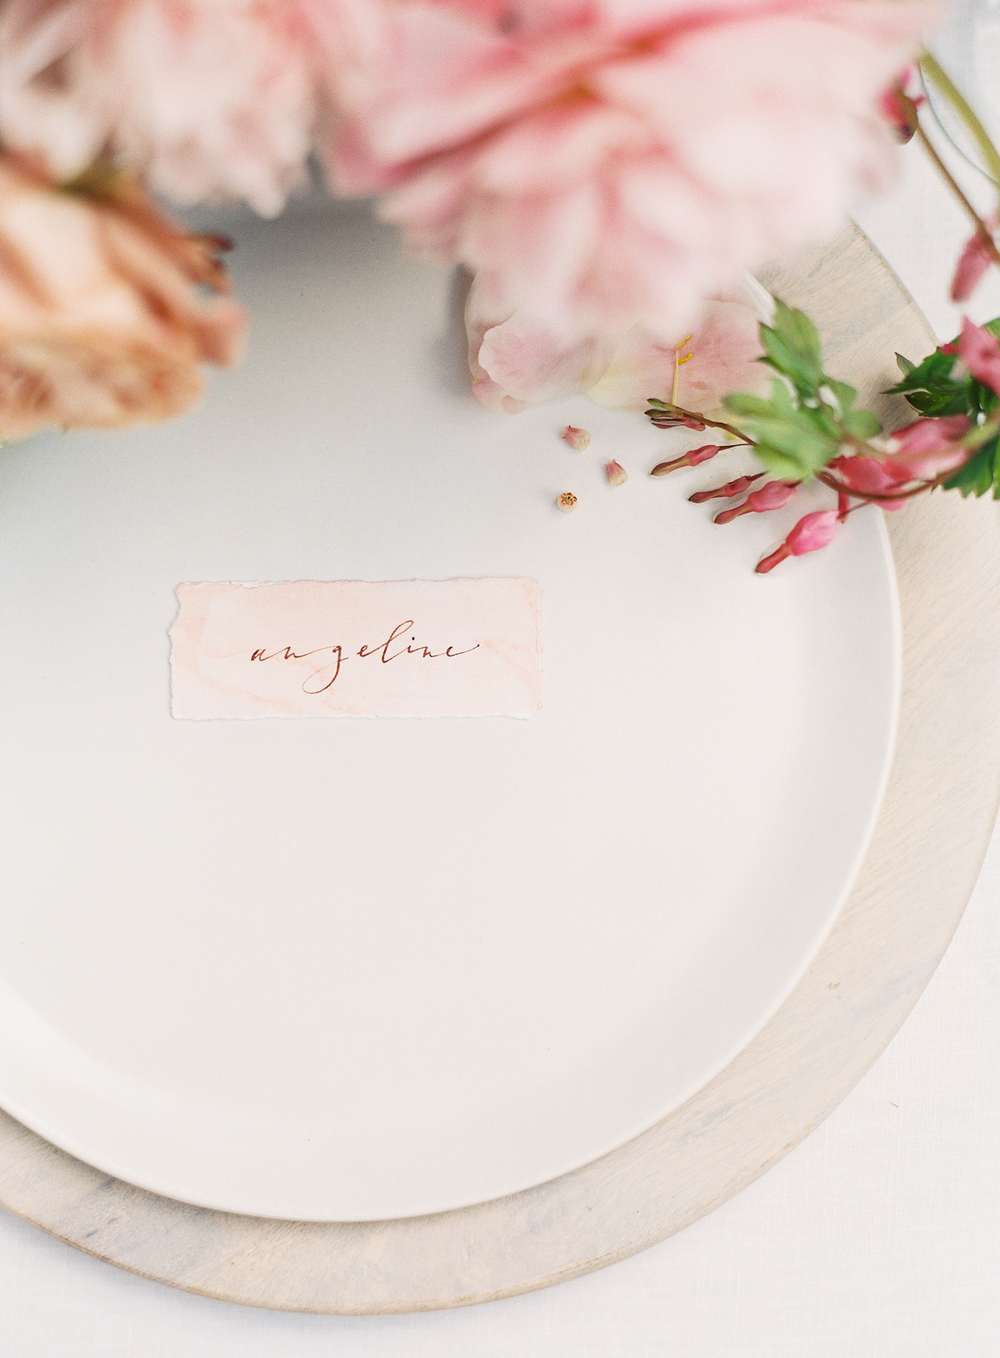 simple place card table setting | terracotta pink wedding inspiration designed by The Wildflowers | follow us on instagram: @ thewildflowers.events